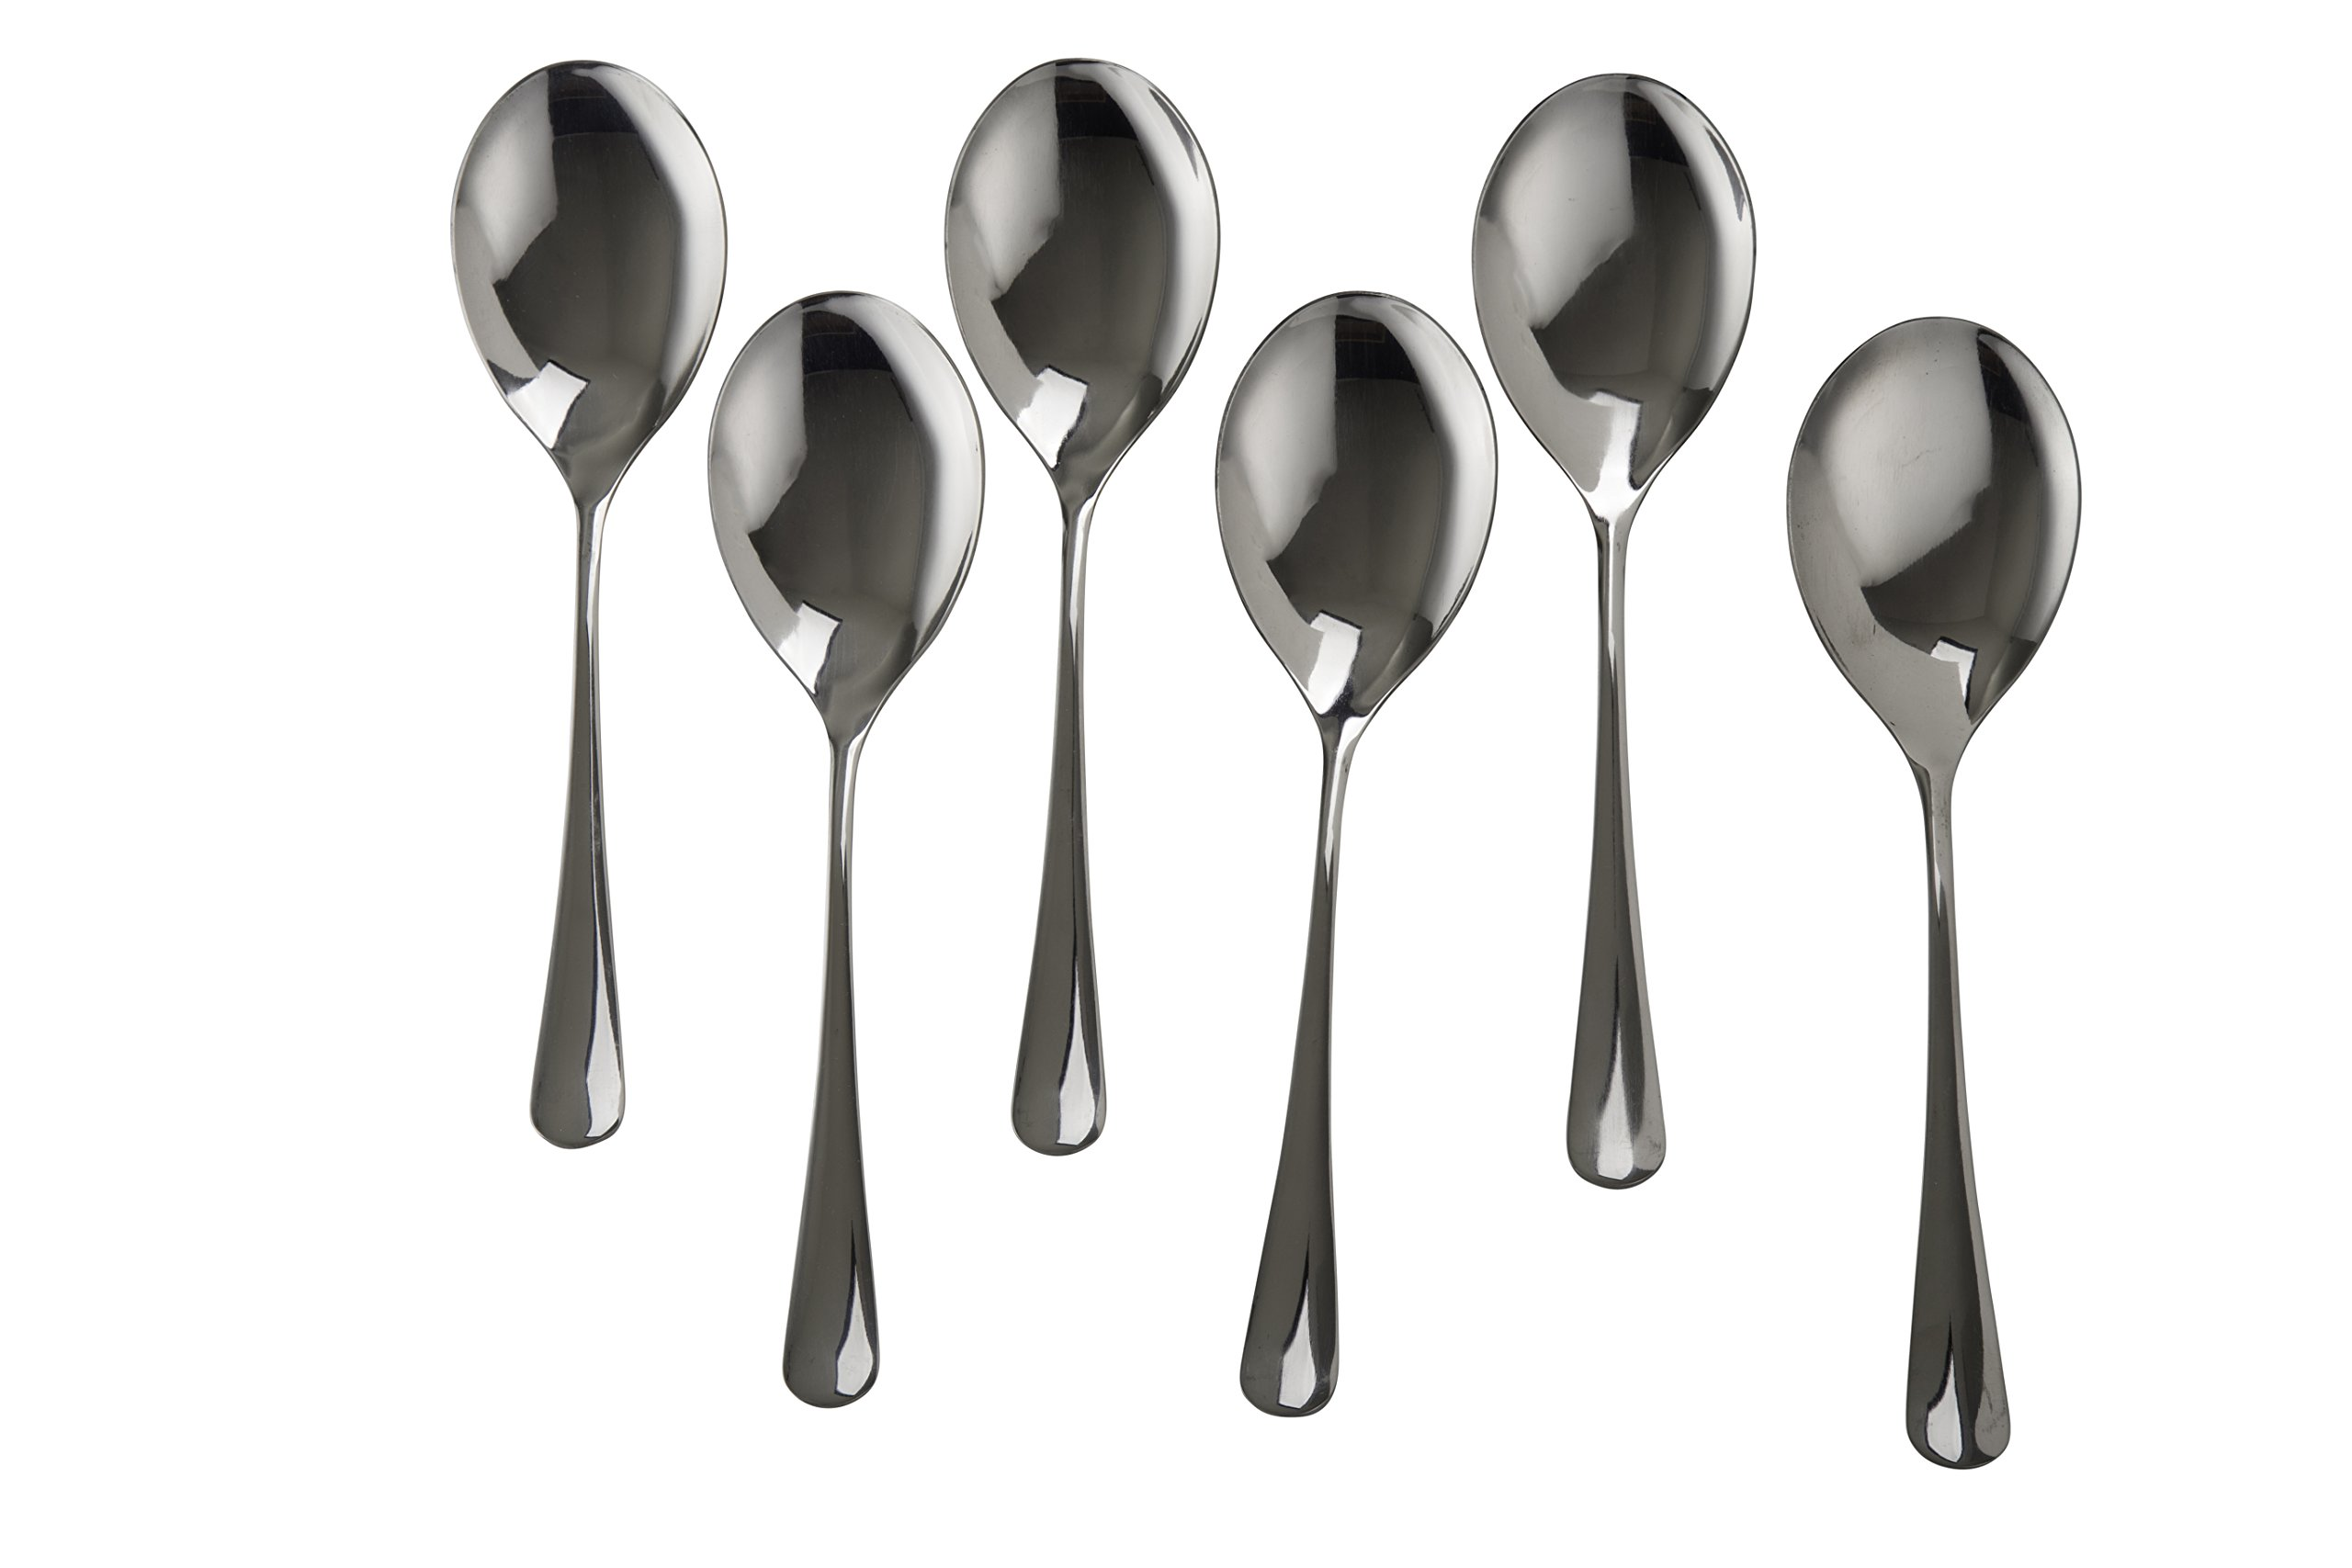 Set of 6 Stainless Steel Large Serving Spoon - 10 inch - High Polish Finish - Buffet & Banquet Style - By Kitchen Winners